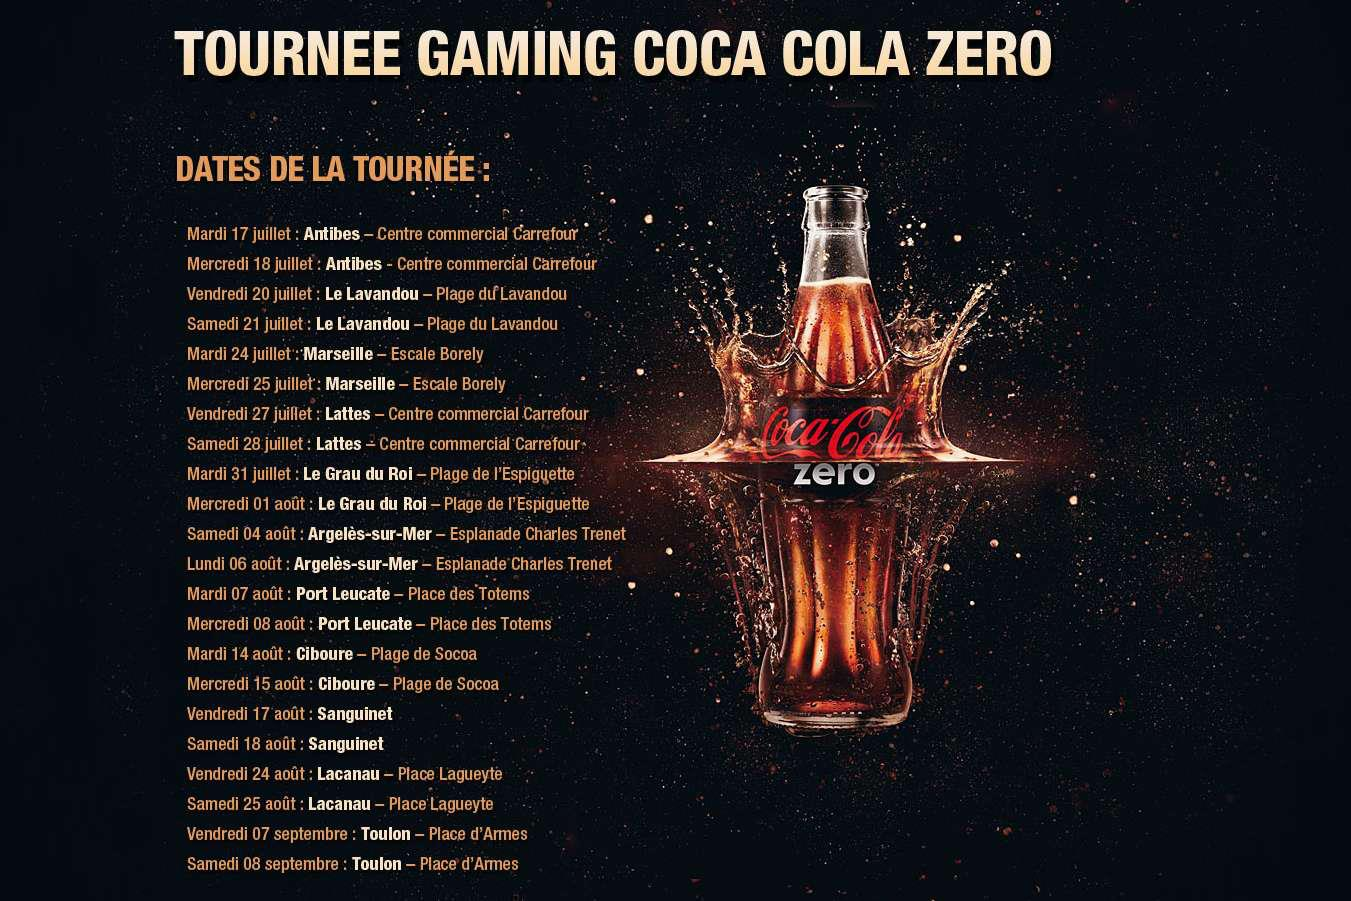 Coca-Cola Zéro Gaming Tour 2012 – Les dates